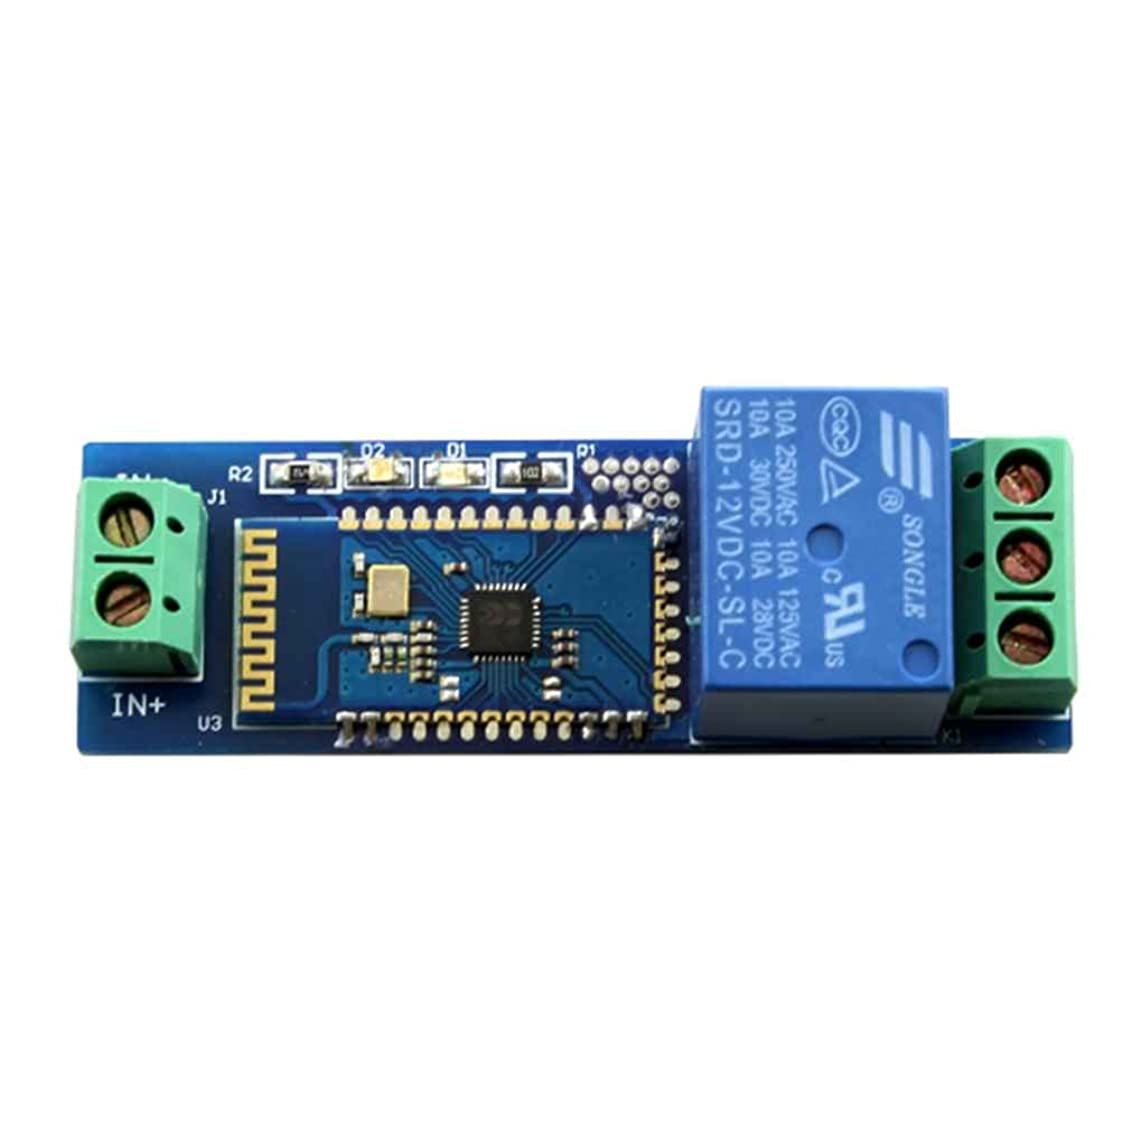 Topker Smartphone Cell Mobile Phone Remote Control Switch Iot Bluetooth 12V Relay Module with Indicator Light